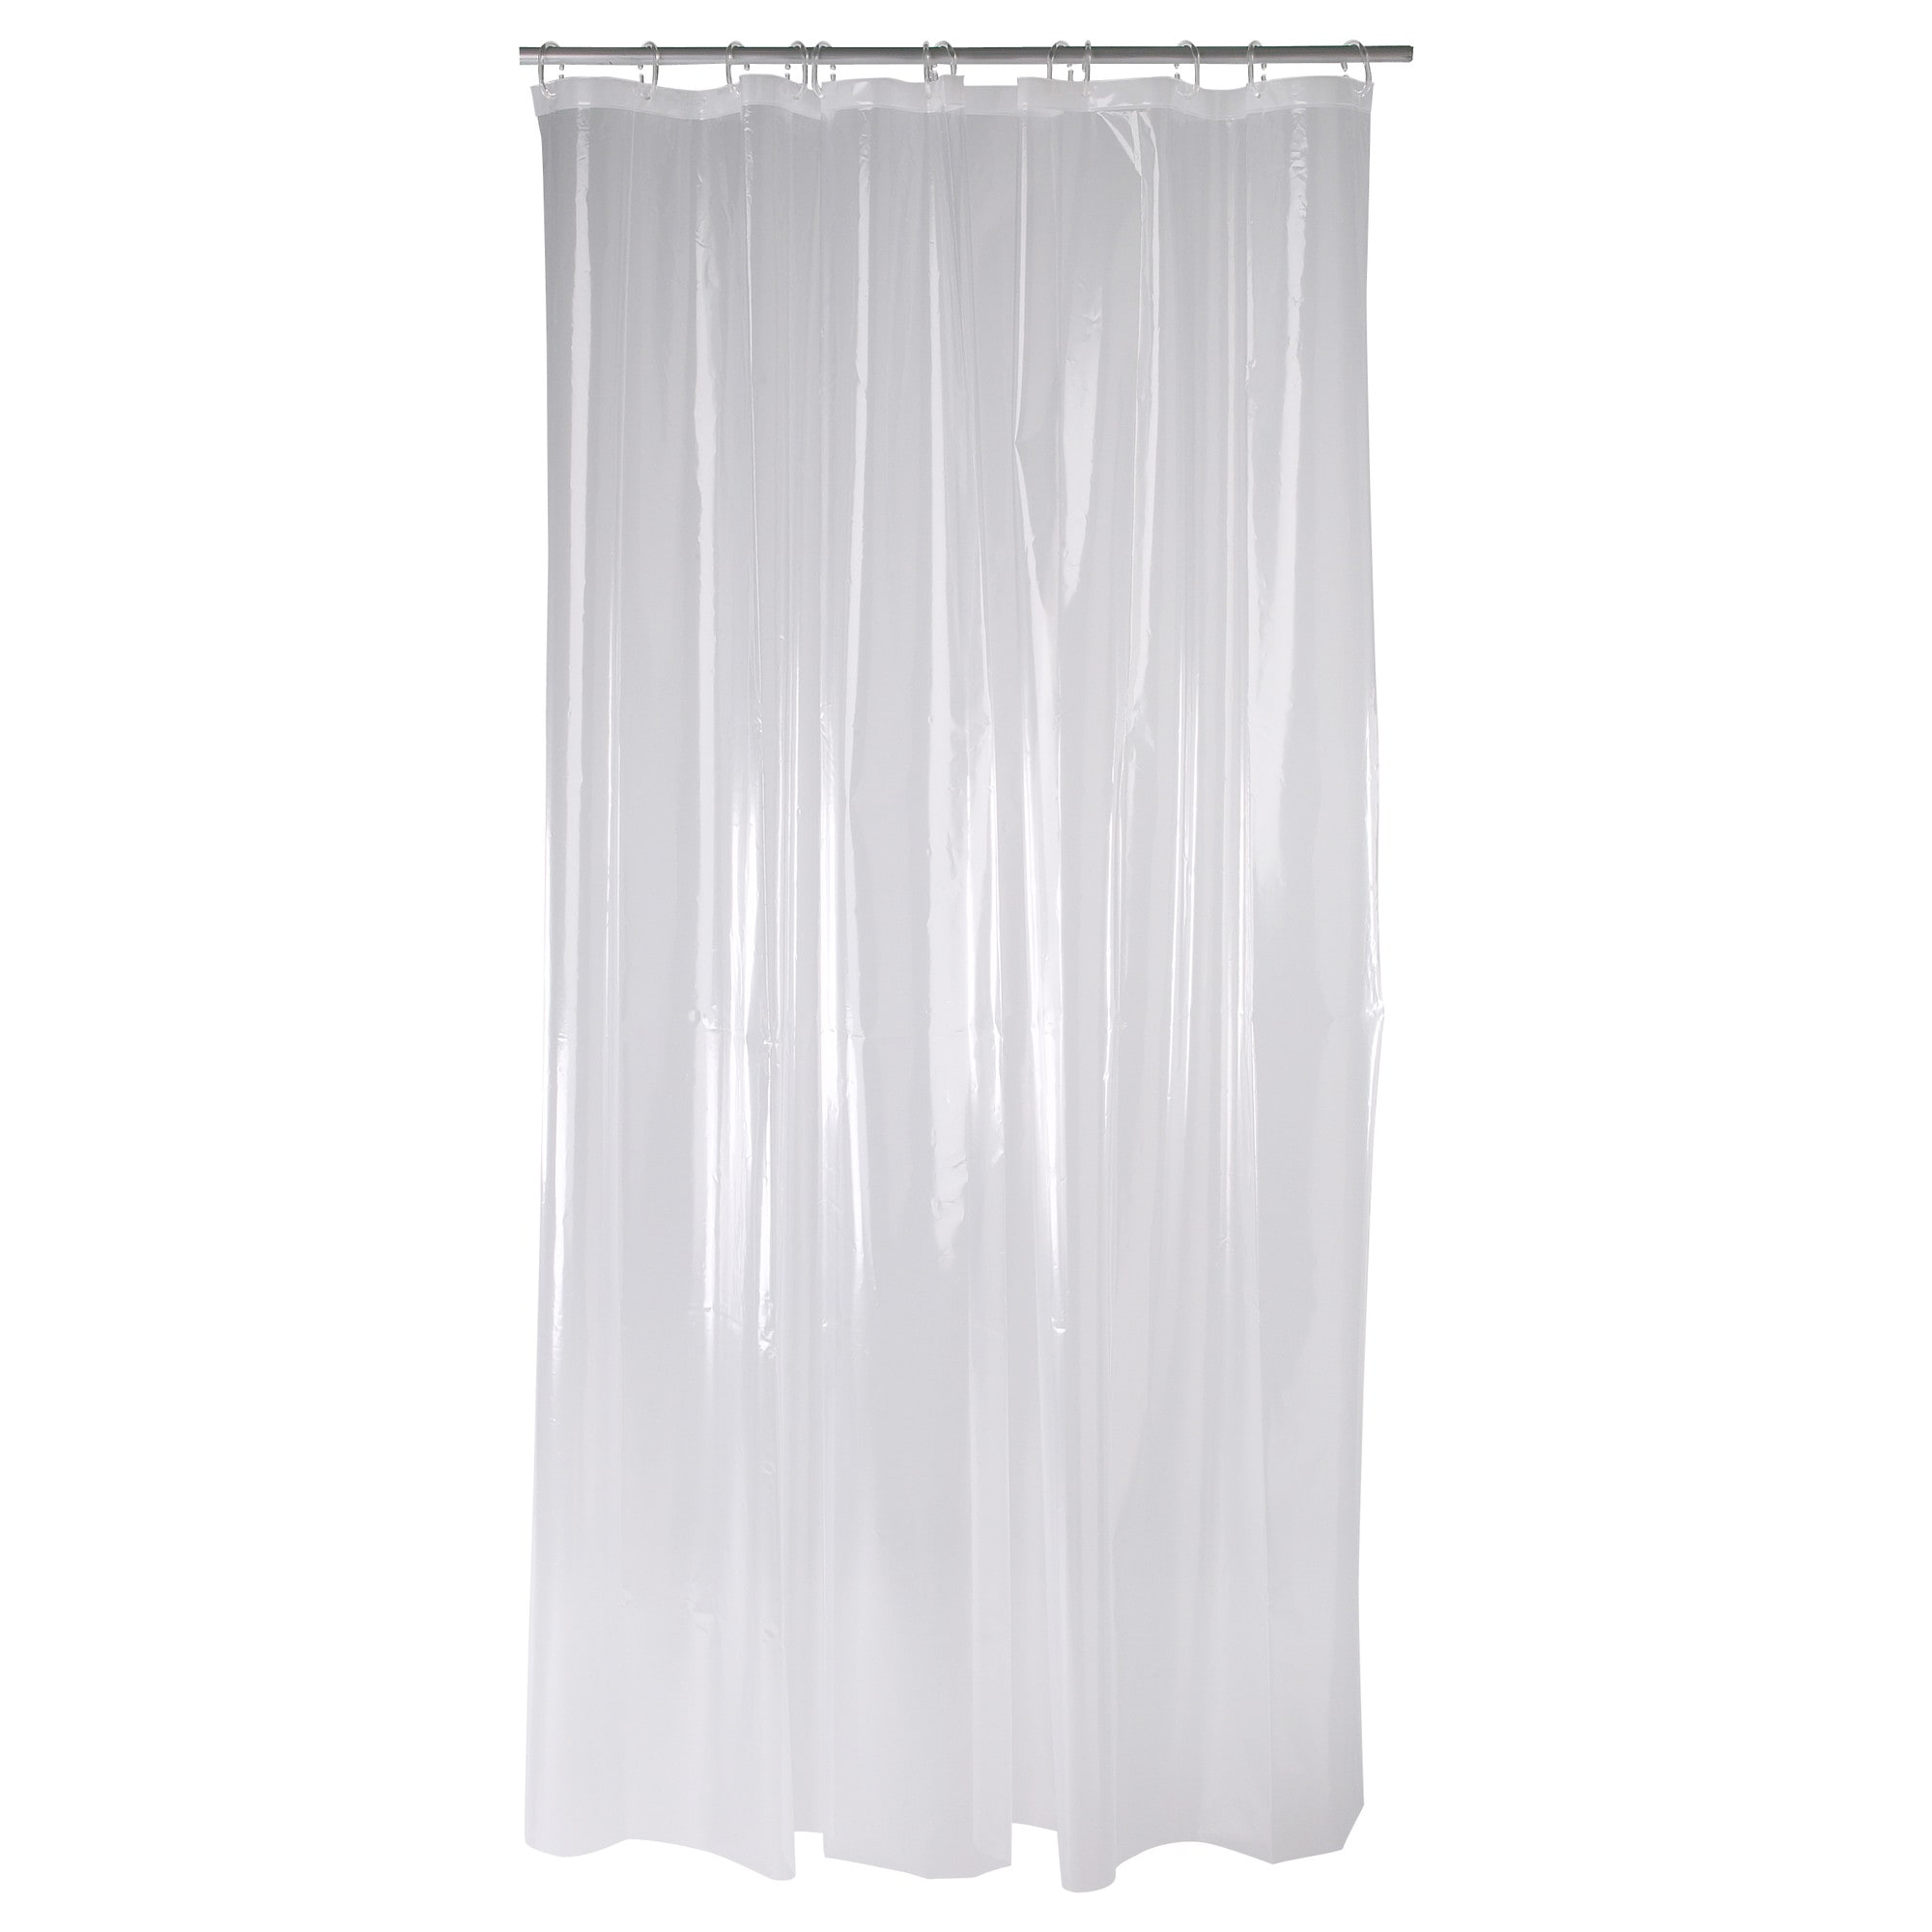 Bathroom plastic curtains - N Ckten Shower Curtain Clear Length 71 Width 71 Area 34 88